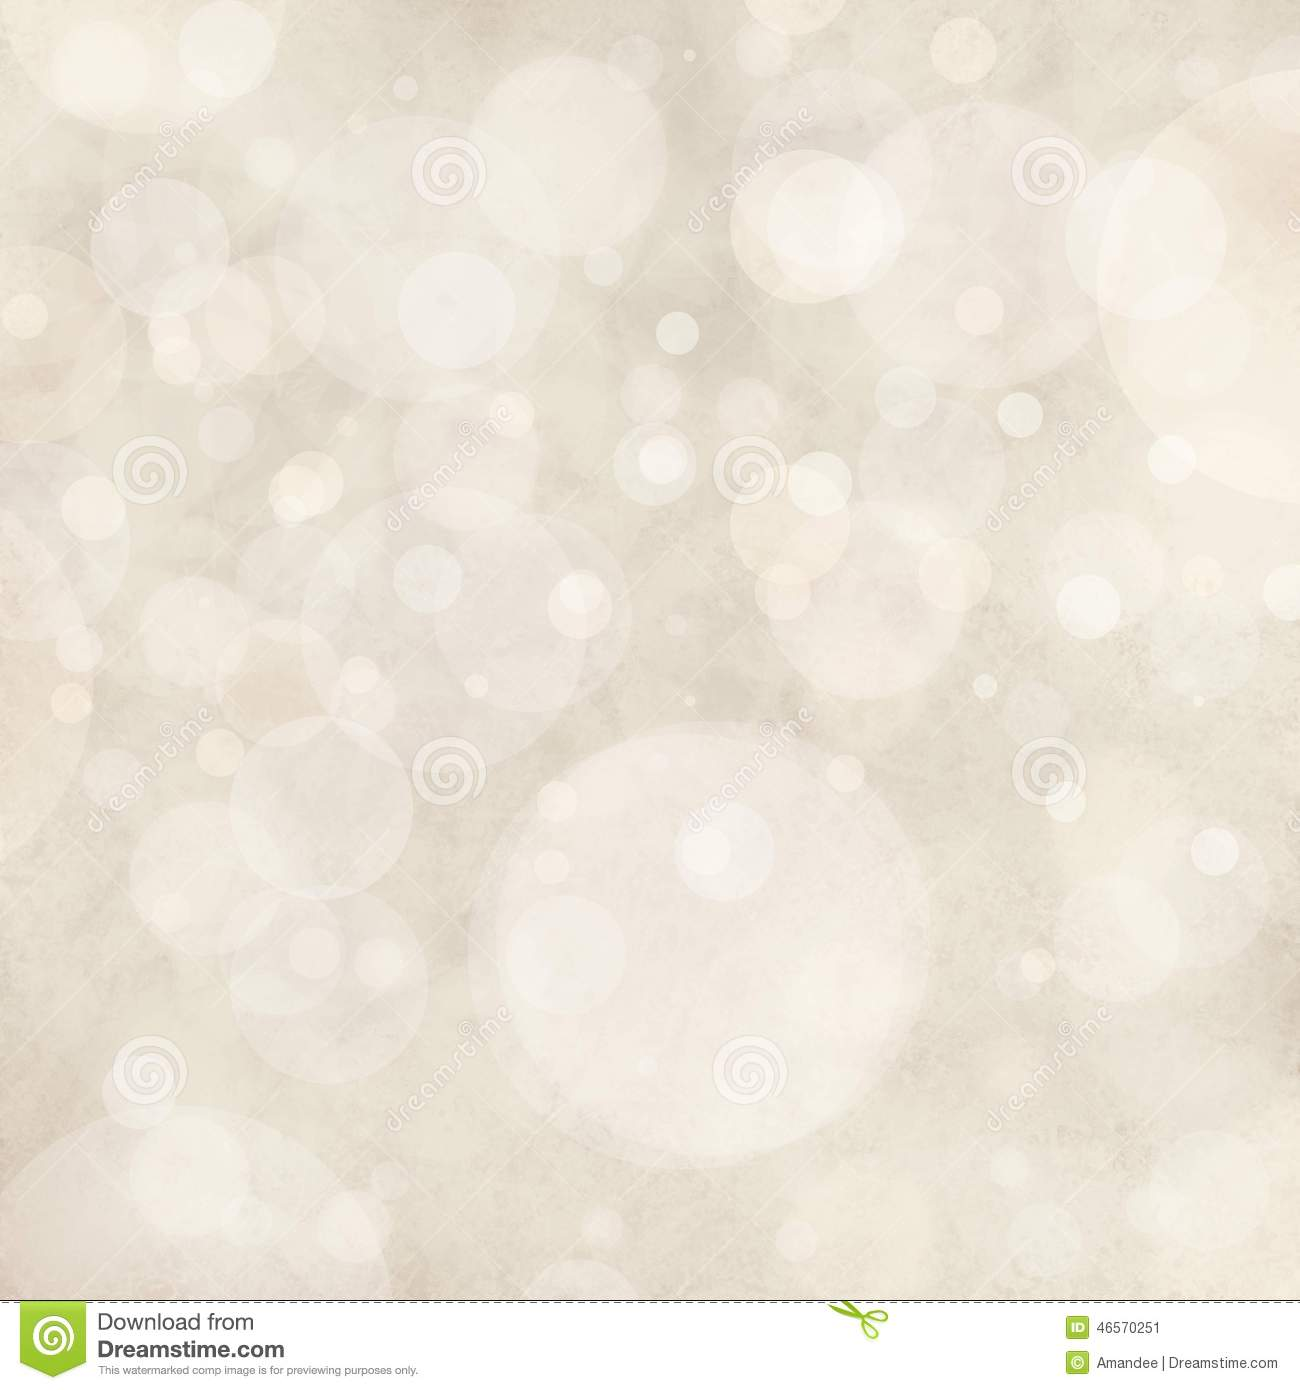 White background lights, bokeh circle shapes layered like falling snow in sky, bubble background design